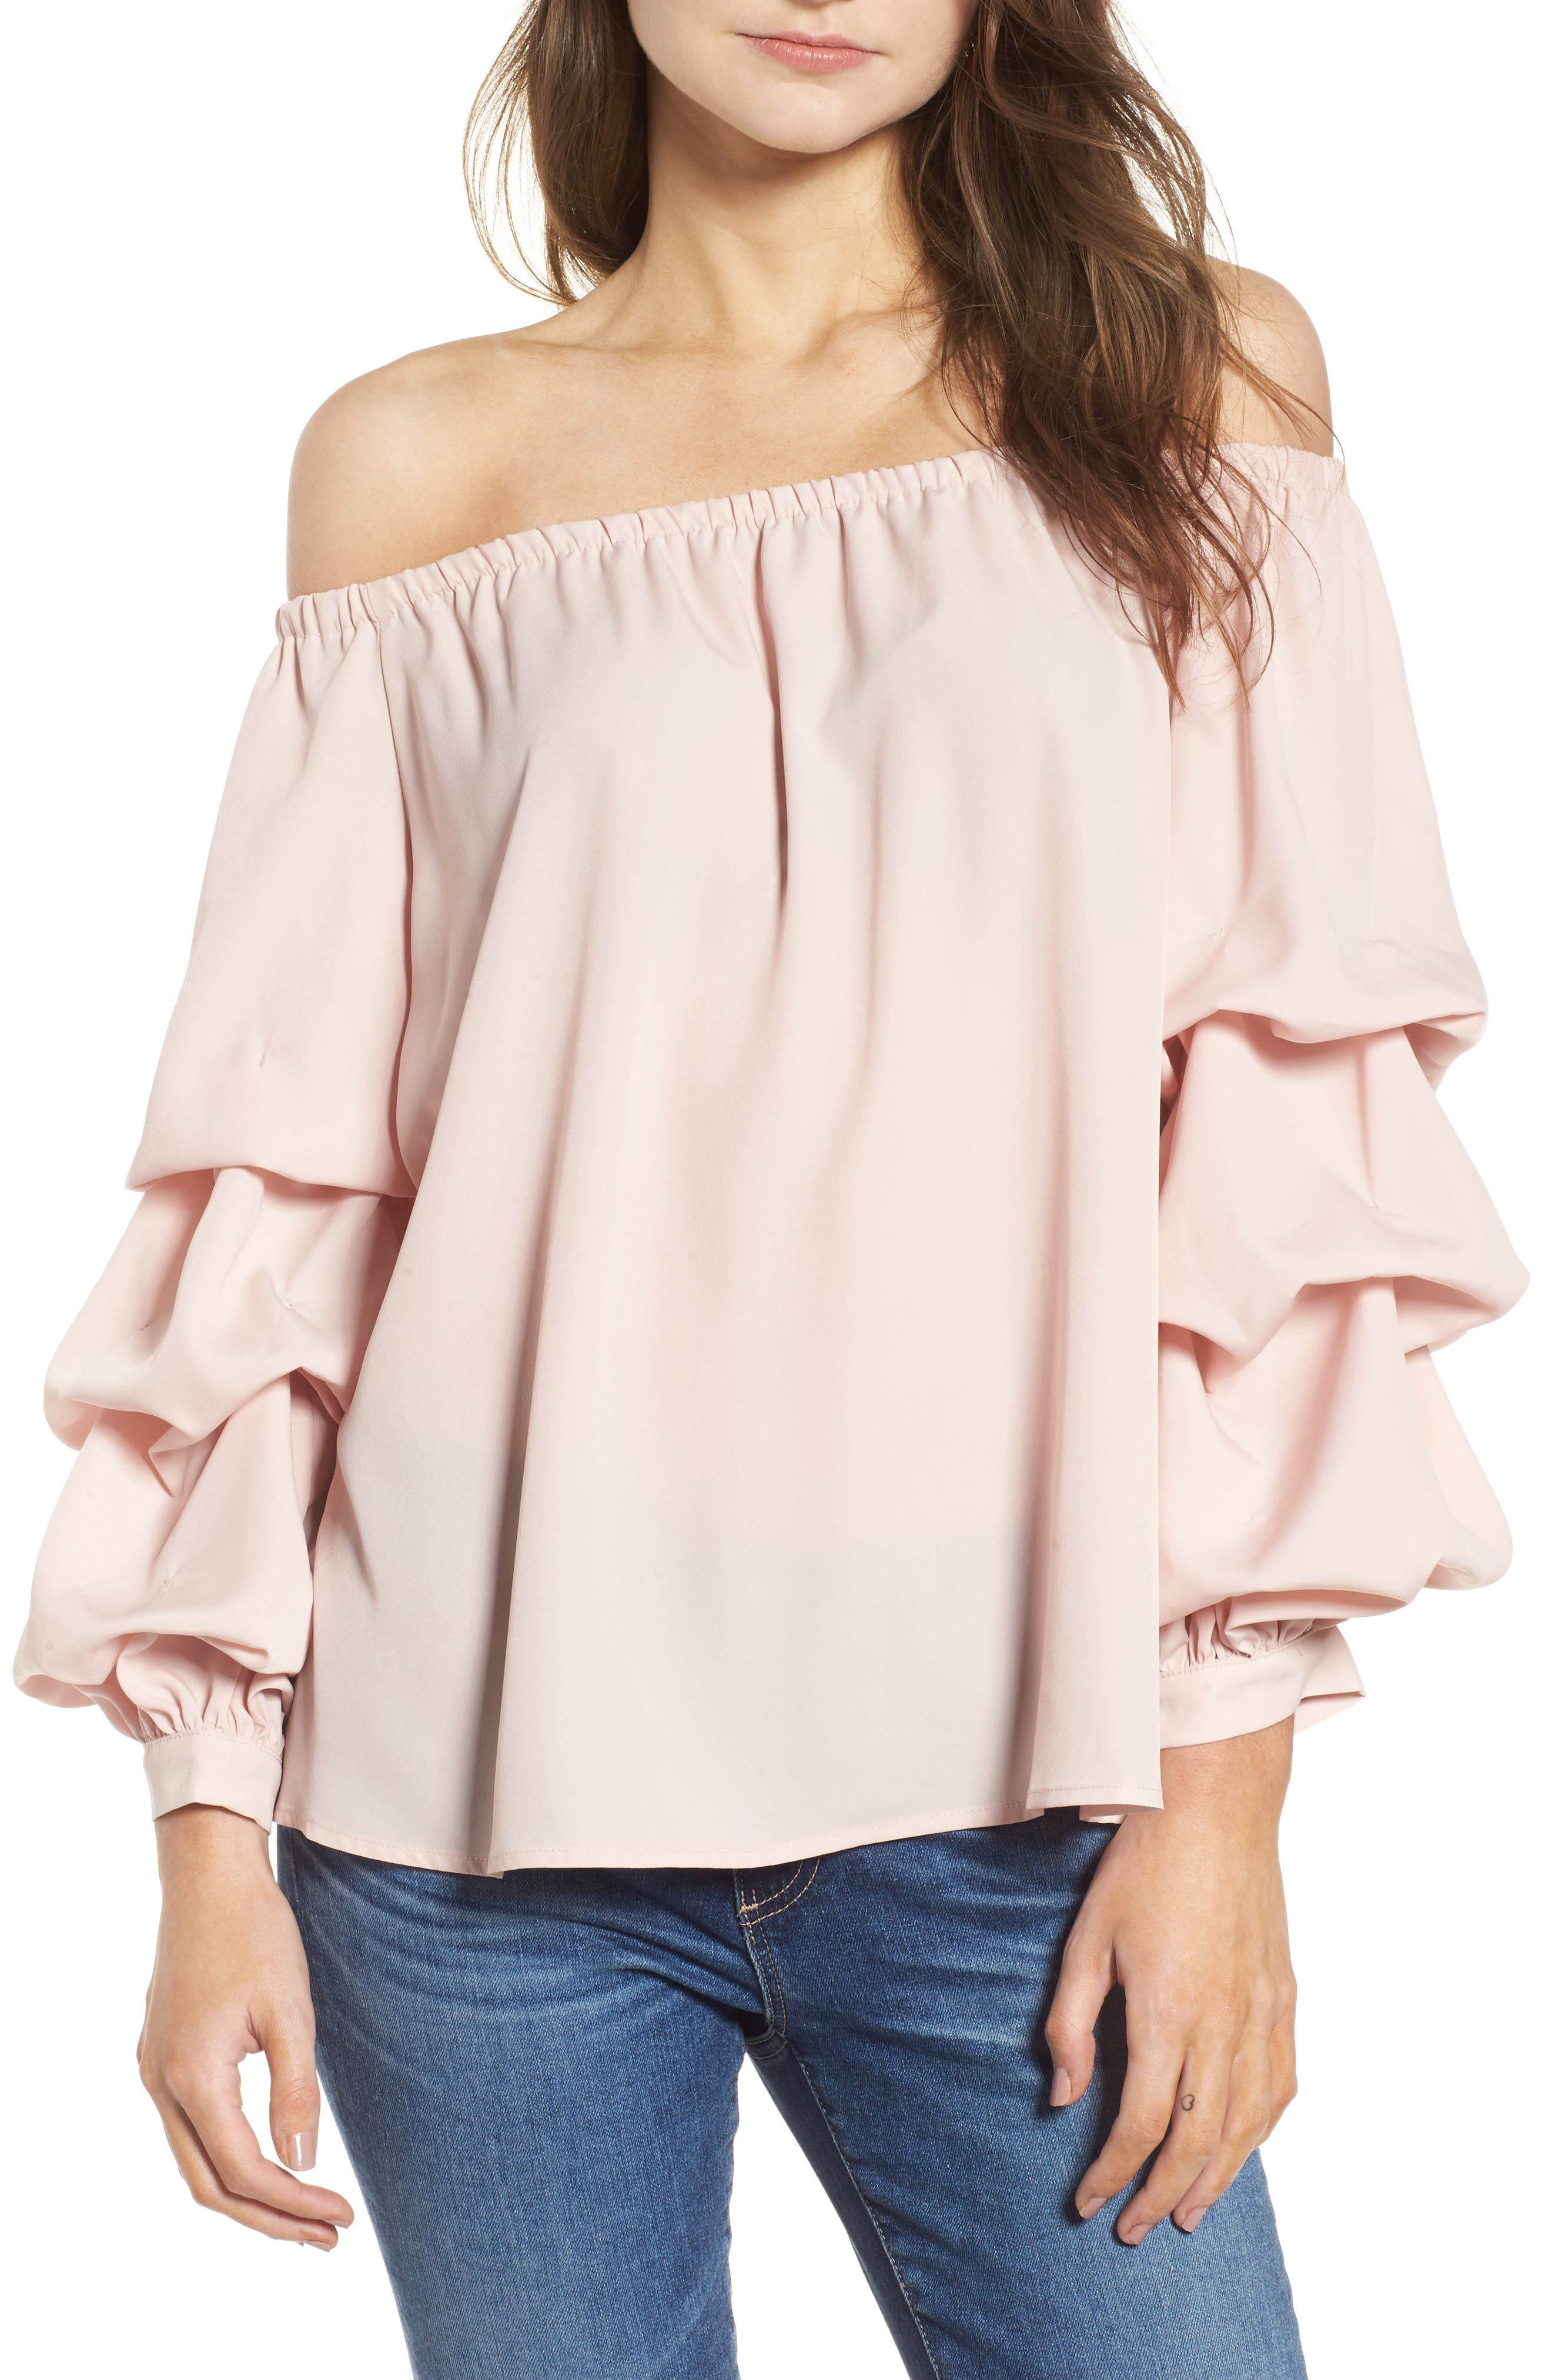 Off the Shoulder Top,                             Main thumbnail 1, color,                             Pink Peach